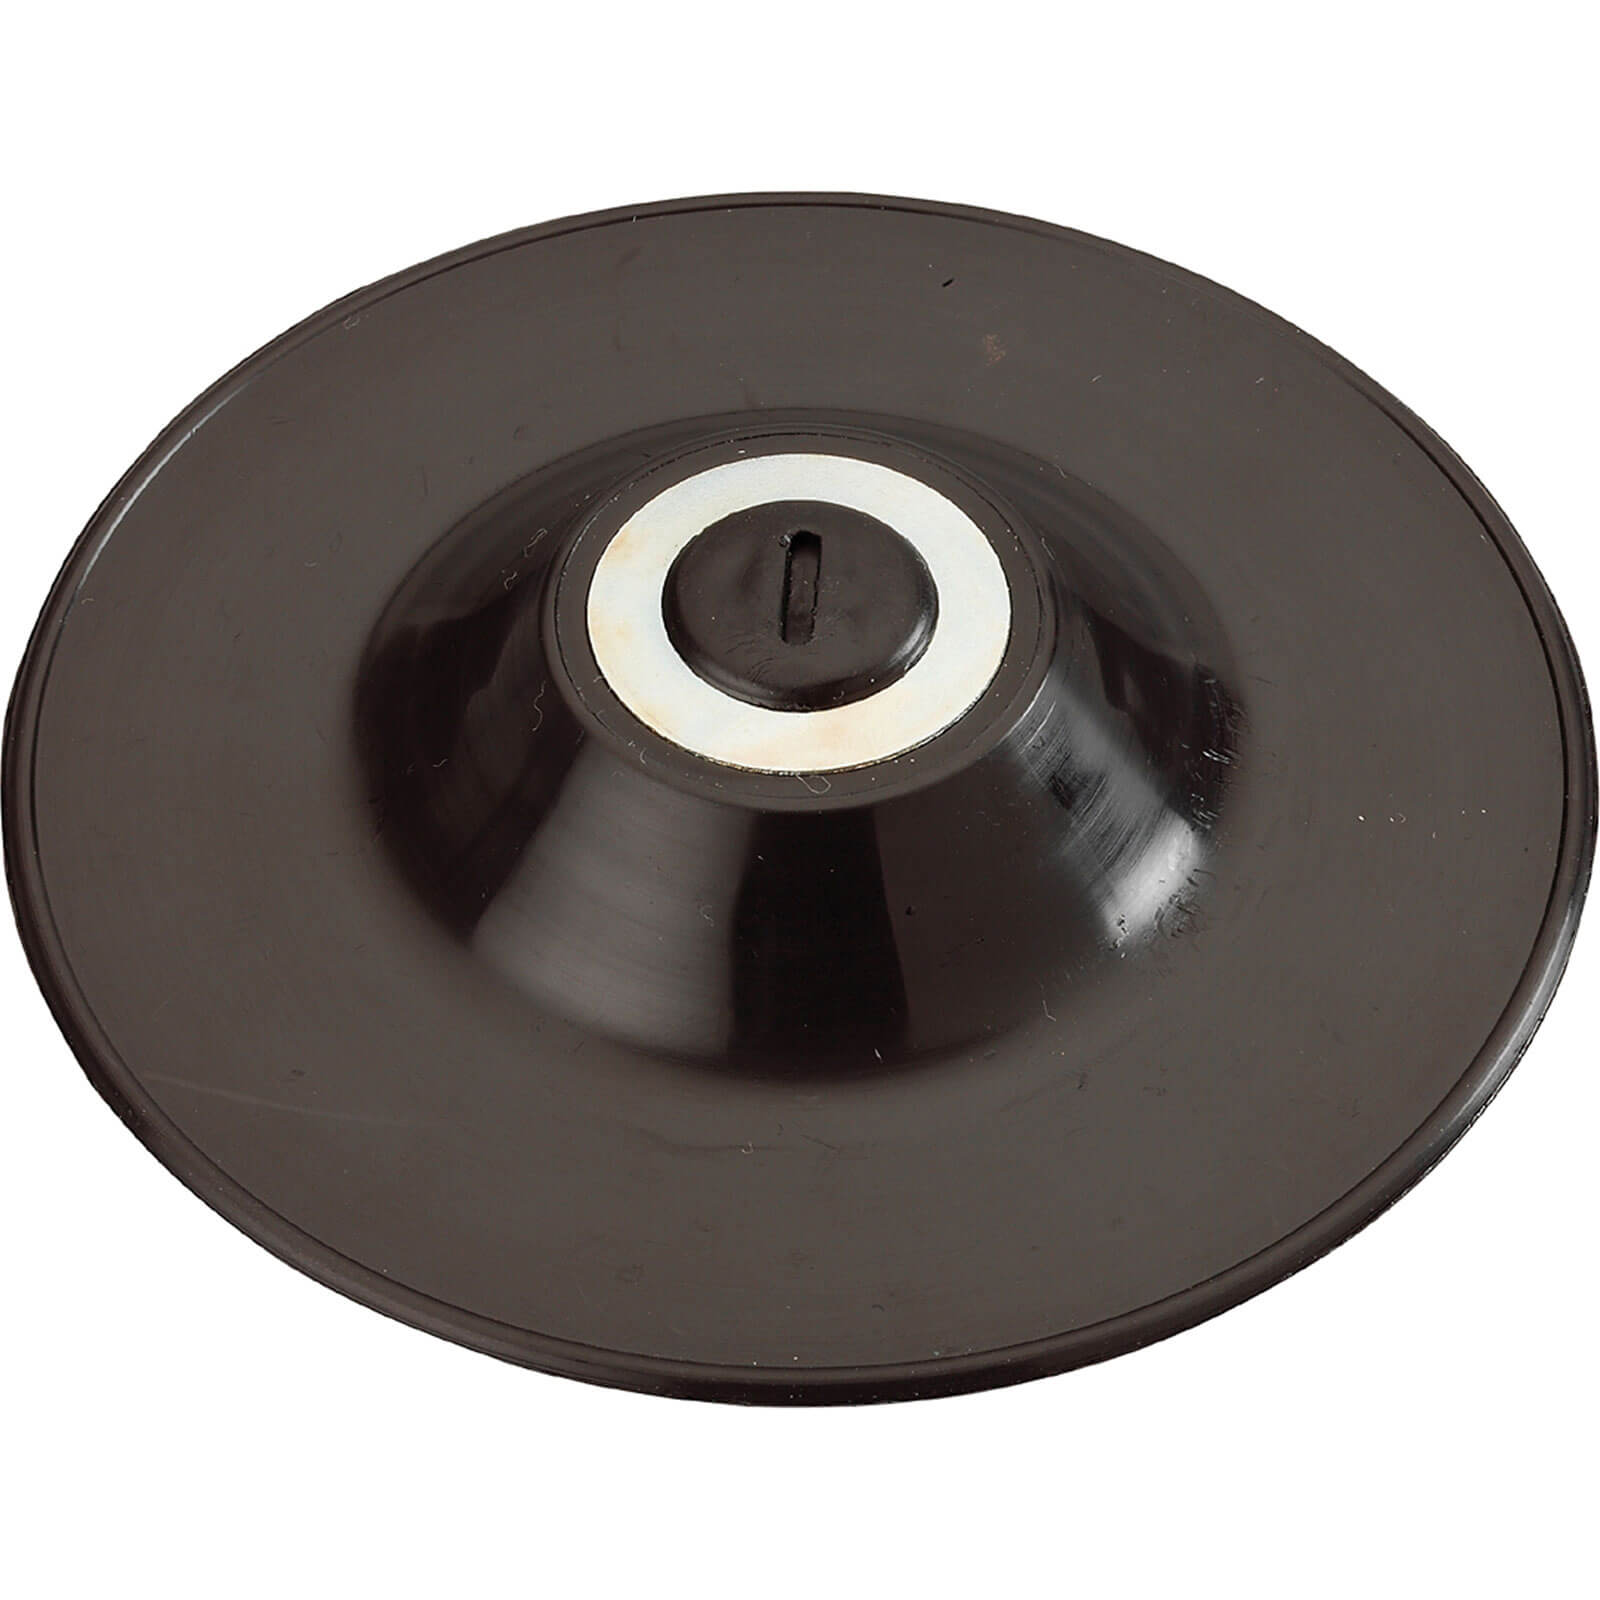 Image of KWB Flexible Angle Grinder Backing Pad 115mm